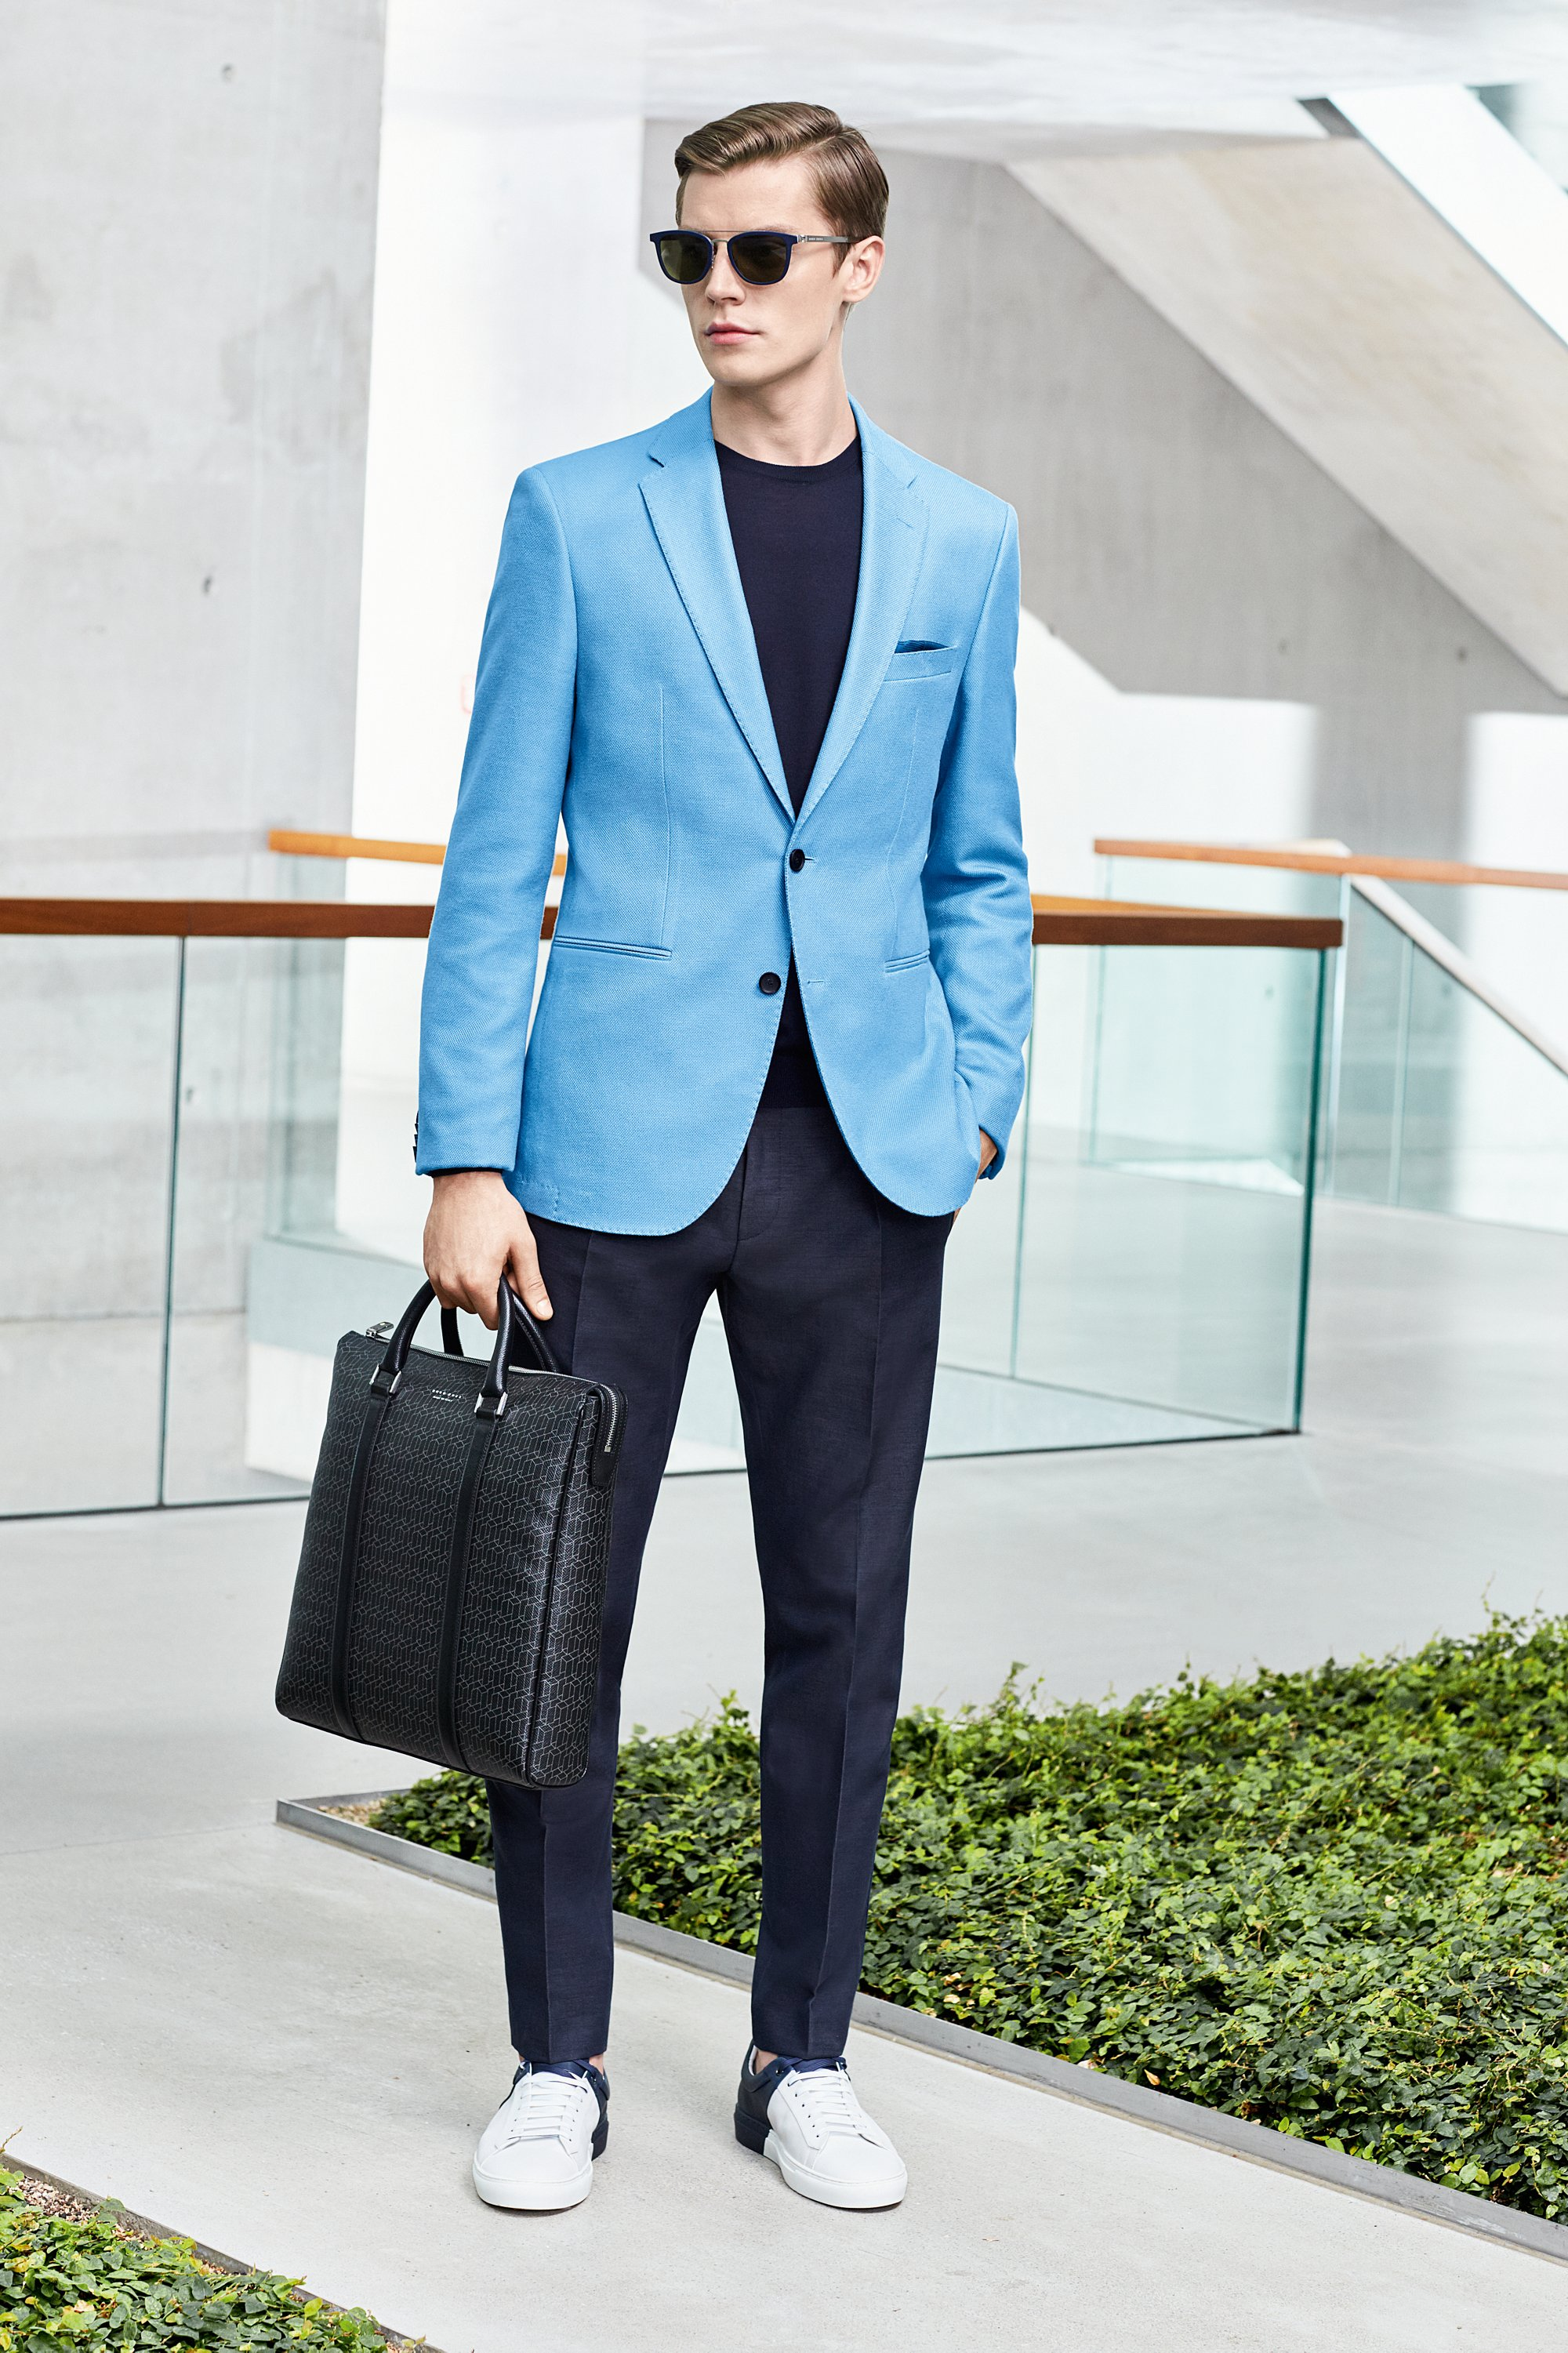 Suit, sunglasses, bag and white sneakers by BOSS